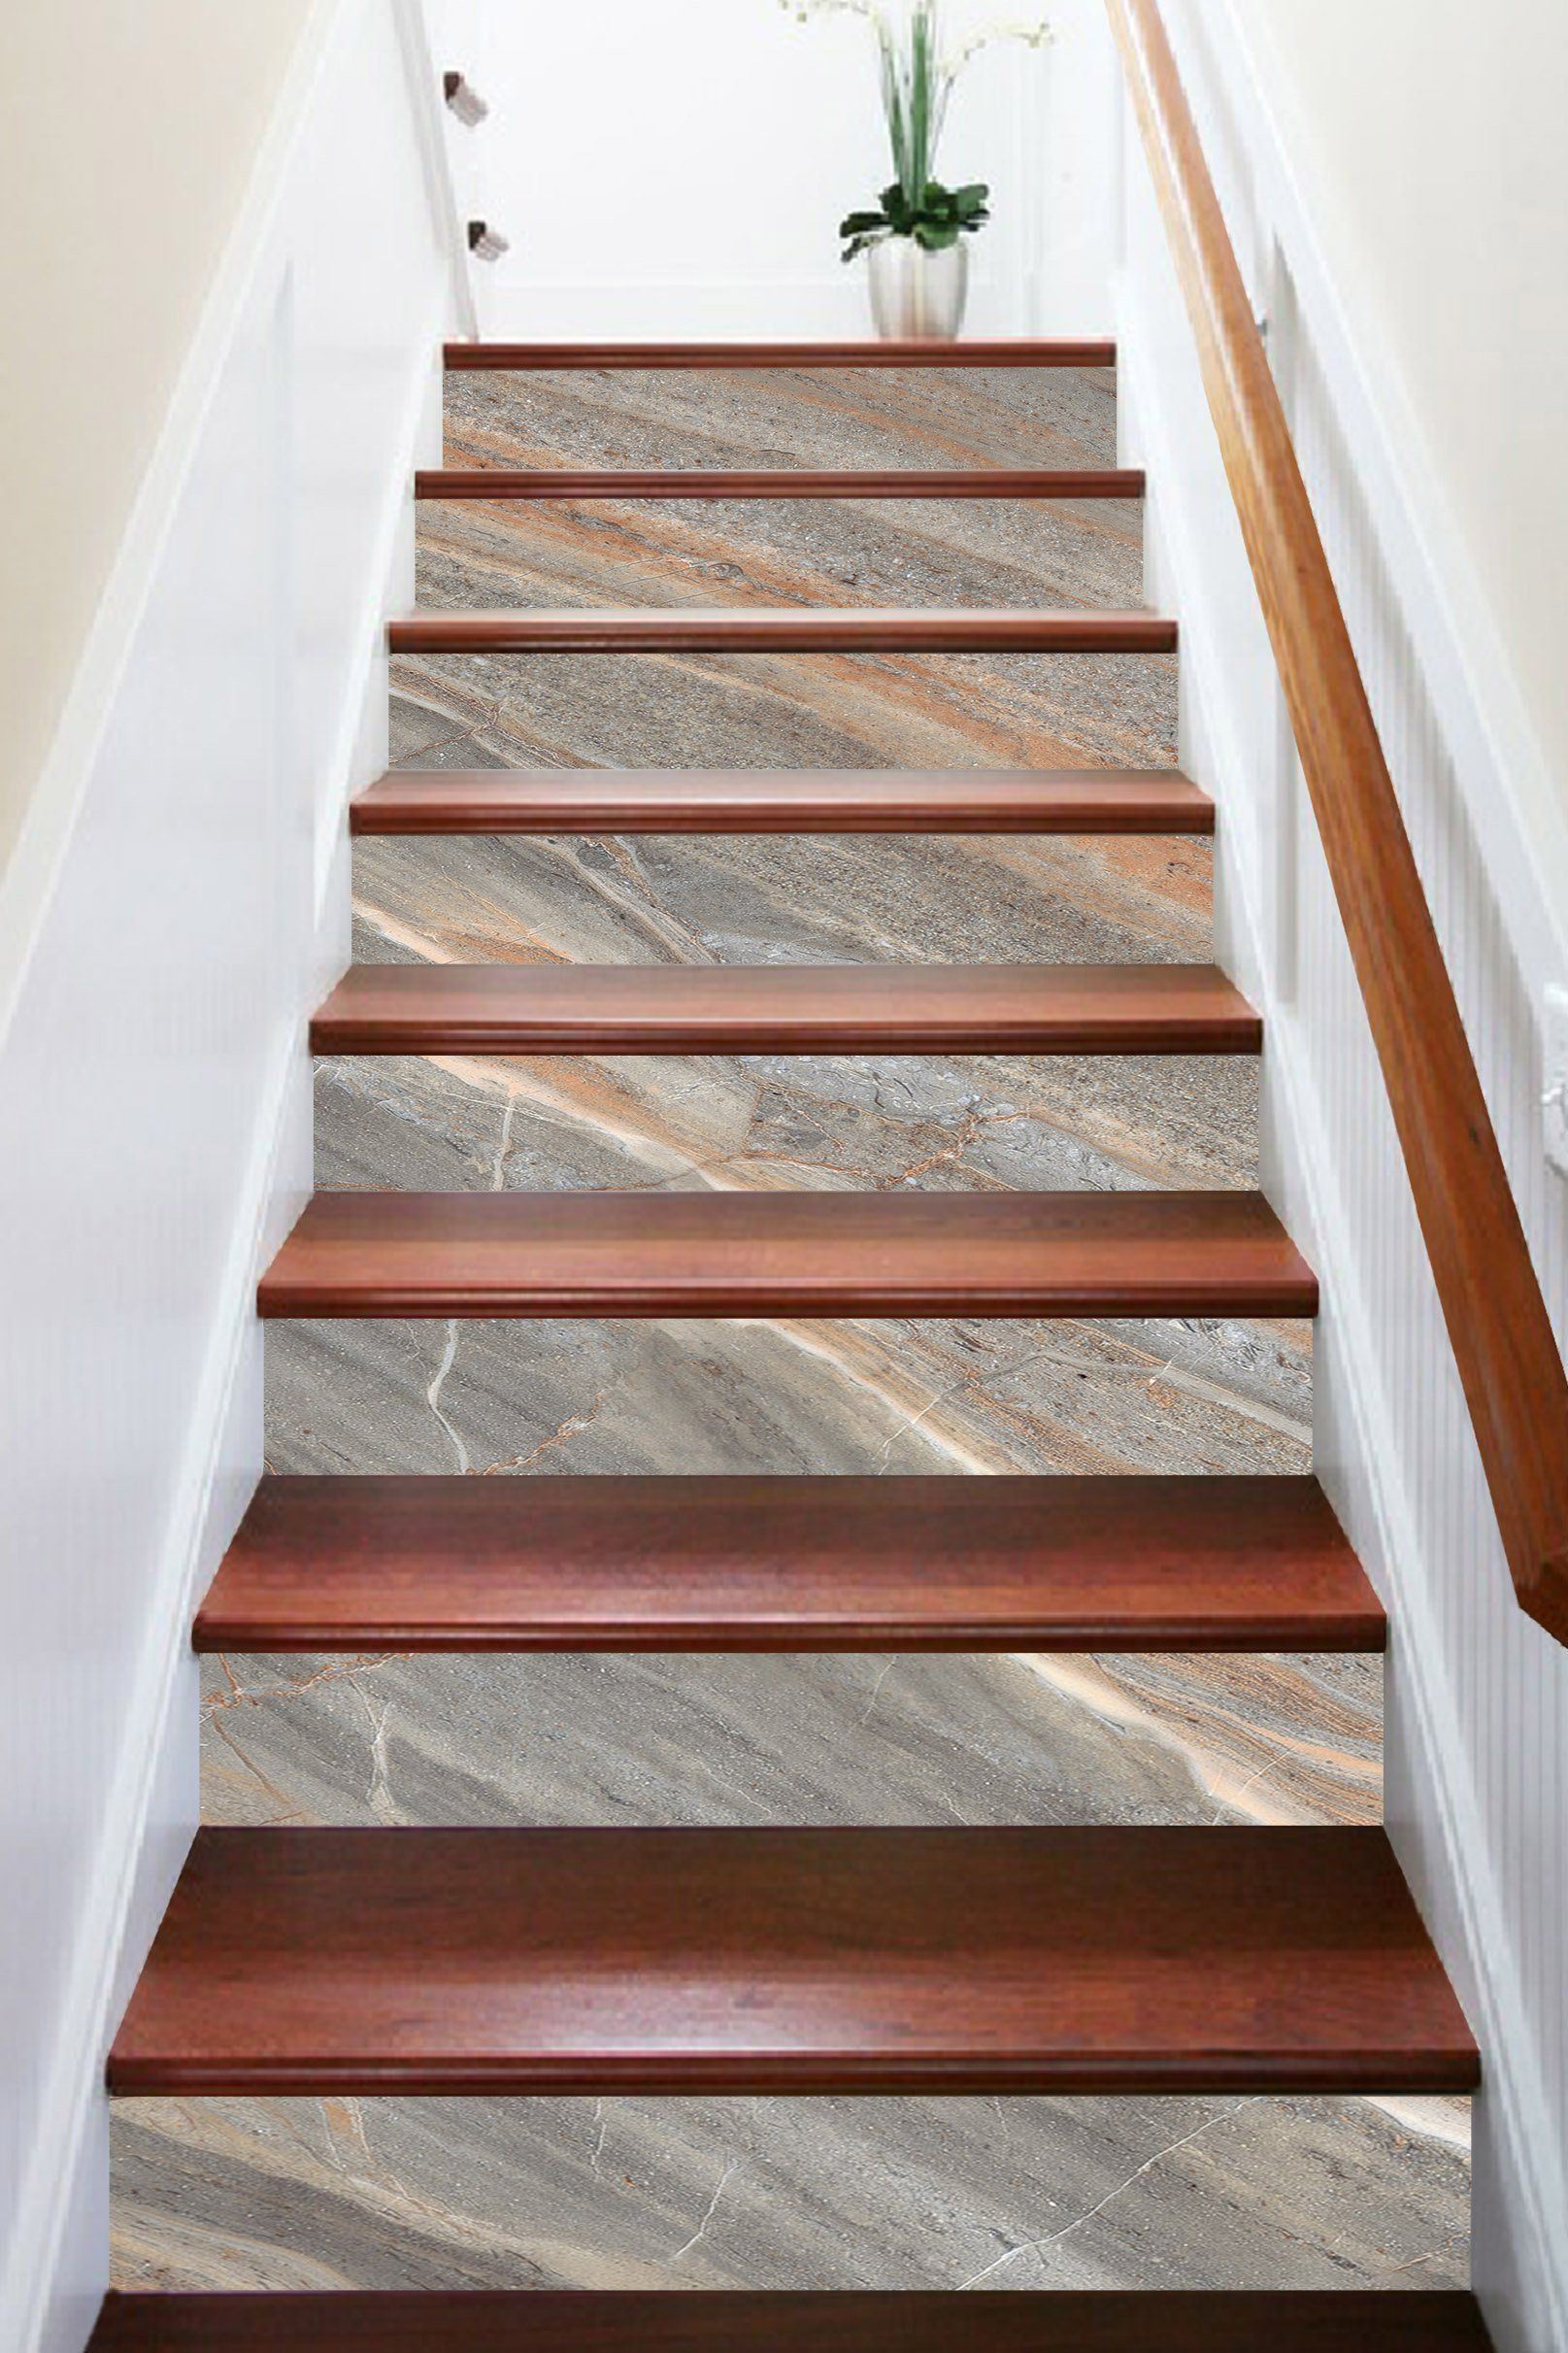 Best 3D Transparent Stone 5876 Marble Tile Texture Stair Risers With Images Stair Decor Stair Risers 640 x 480